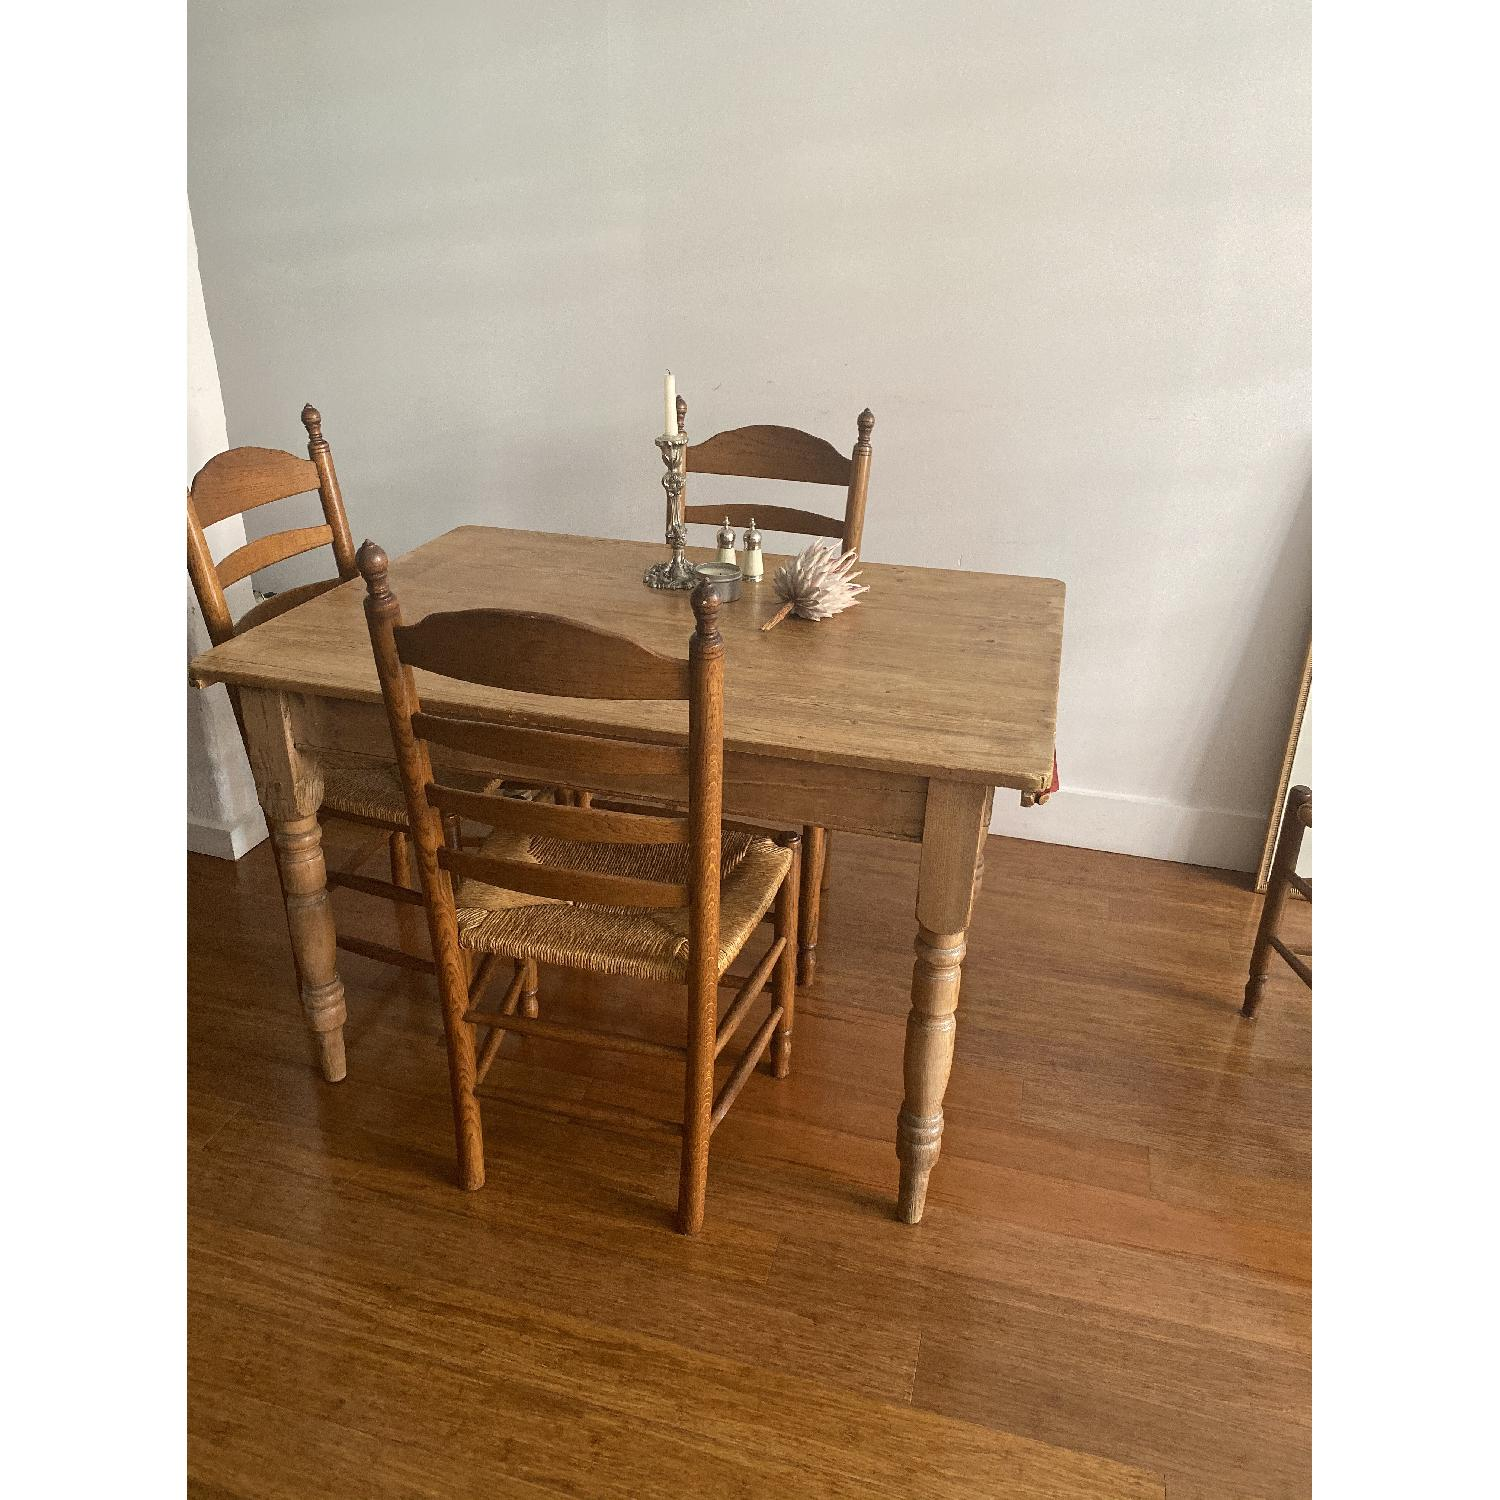 Antique Oak Wooden Dining Table w/ 4 Chairs - image-2